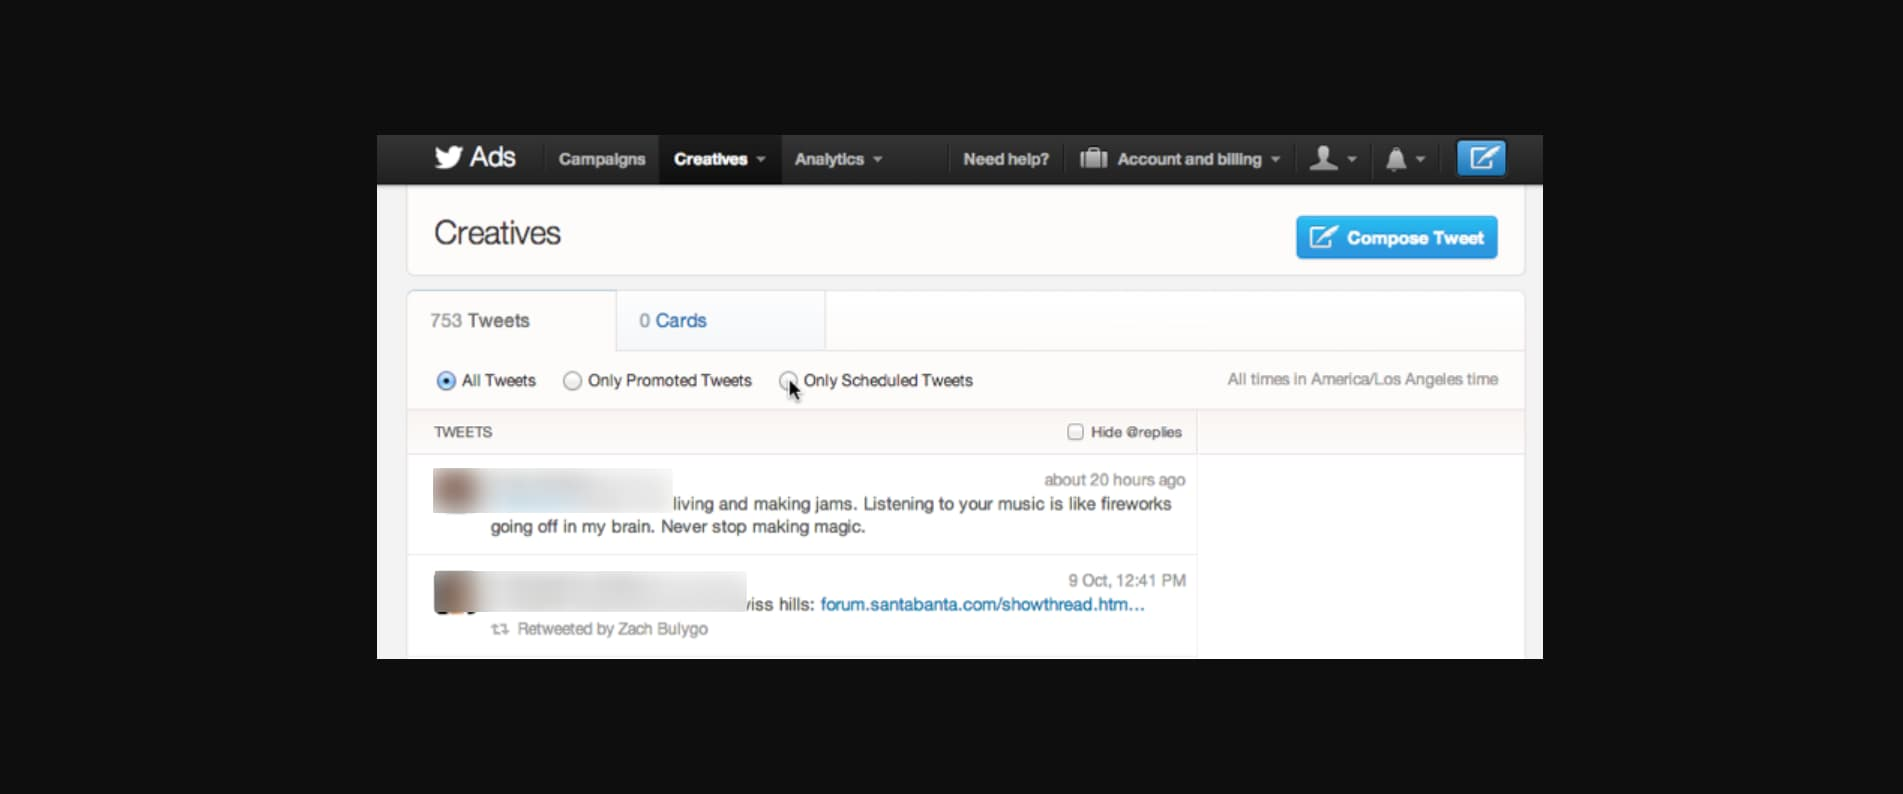 How to schedule tweets on Twitter: tap Only Scheduled Tweets